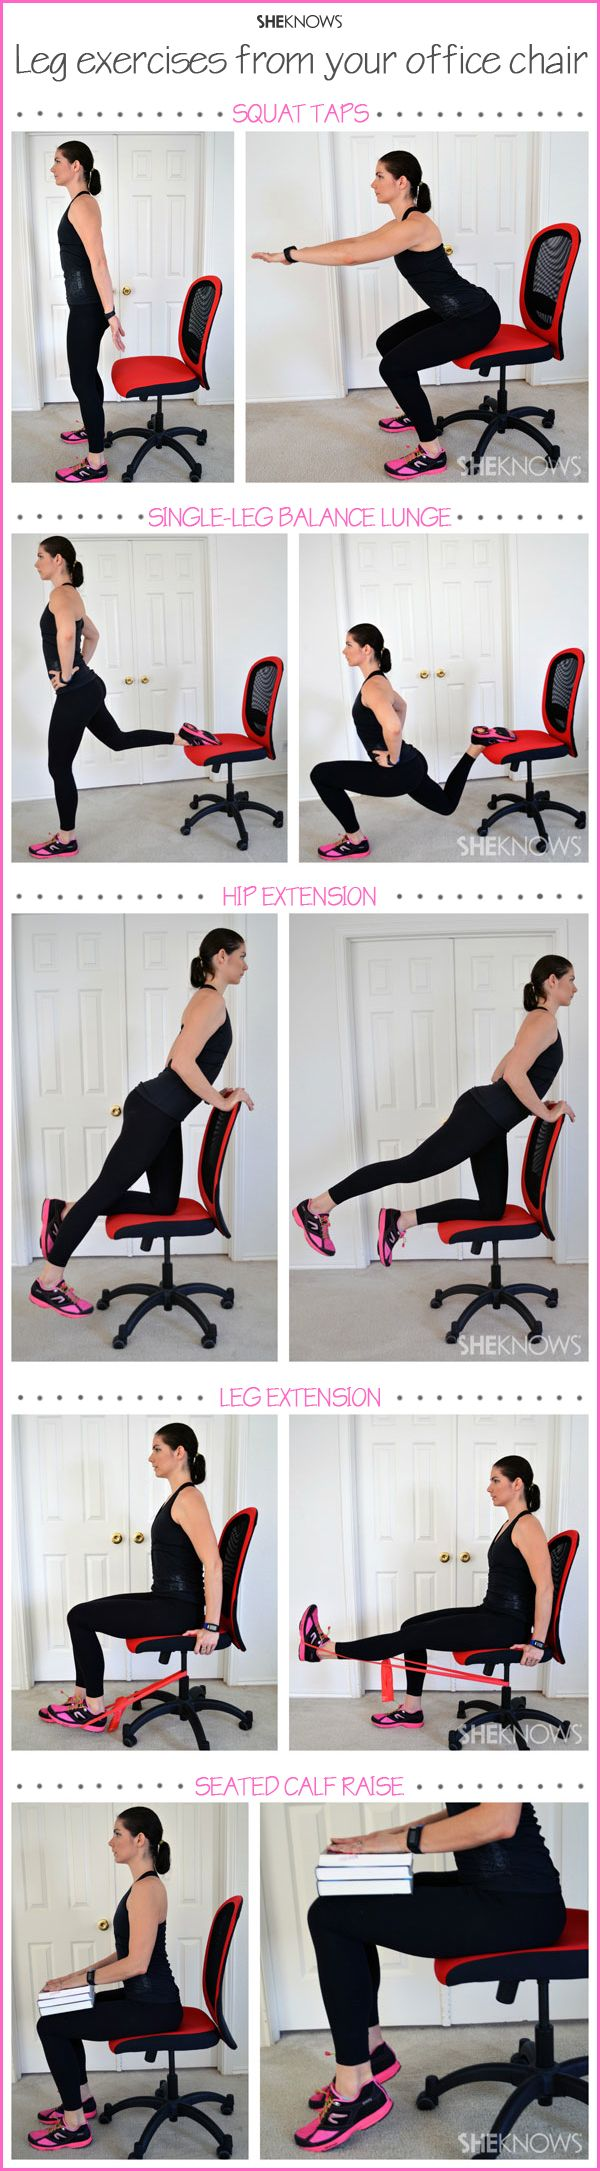 Do you work in a office? Then work out your legs while sitting at your desk.    If you like this pin,  repin it, like it, comment and follow our boards :-) #FastSimpleFitness